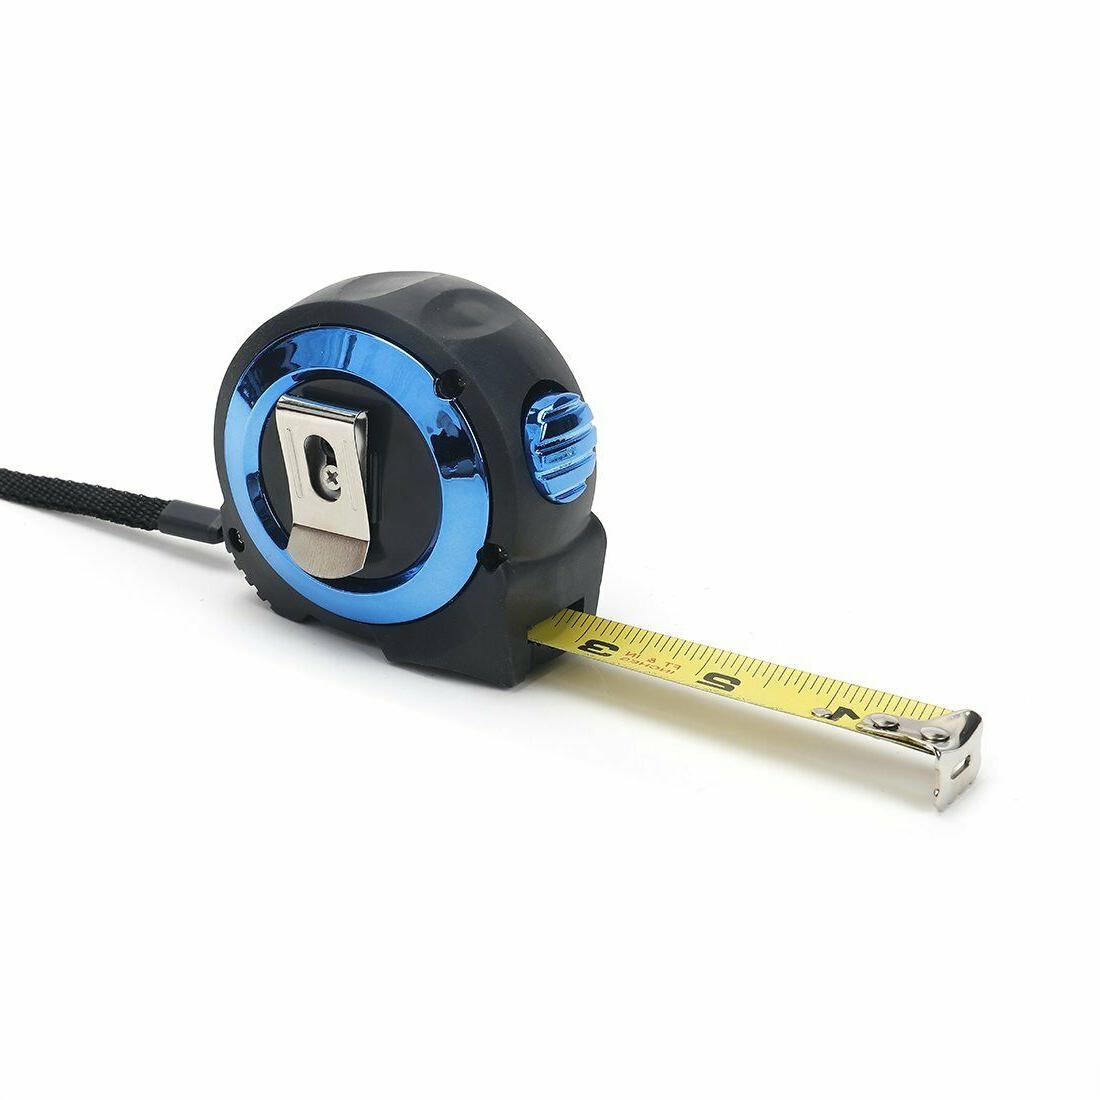 WORKPRO 2-piece Tape Measure Set Easy-read and 16Ft